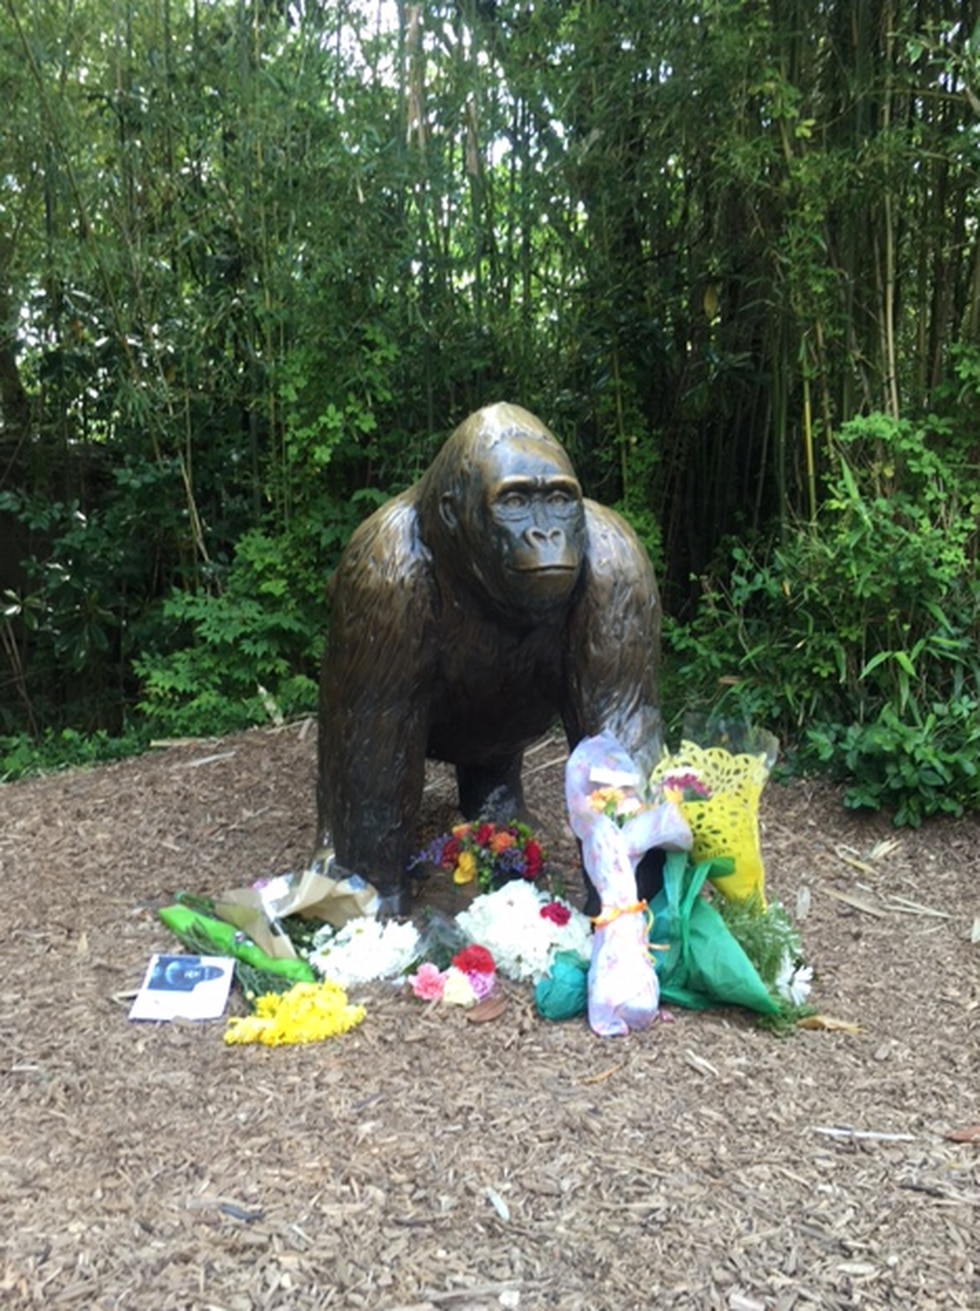 Visitors placed flowers and cards by statue at Gorilla World (PHOTO: Cincinnati Zoo/Provided)